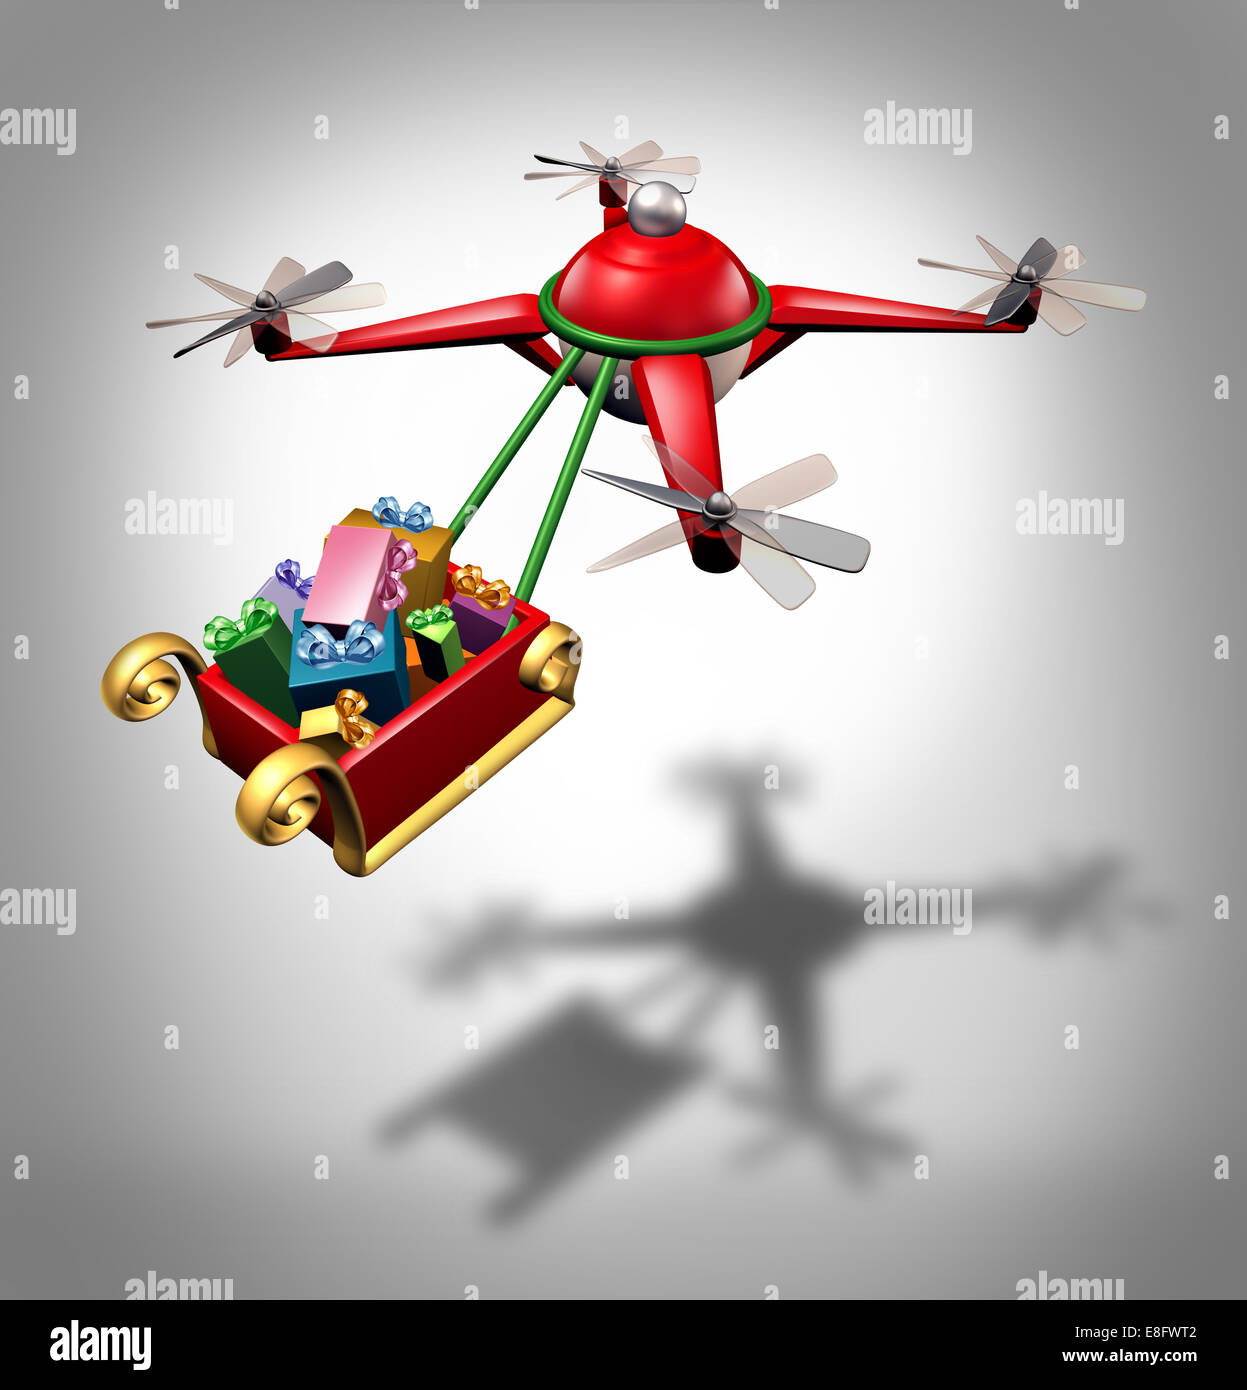 Drone holiday gifts delivery as a christmas sled concept transporting presents with a santa clause flying quadrocopter - Stock Image